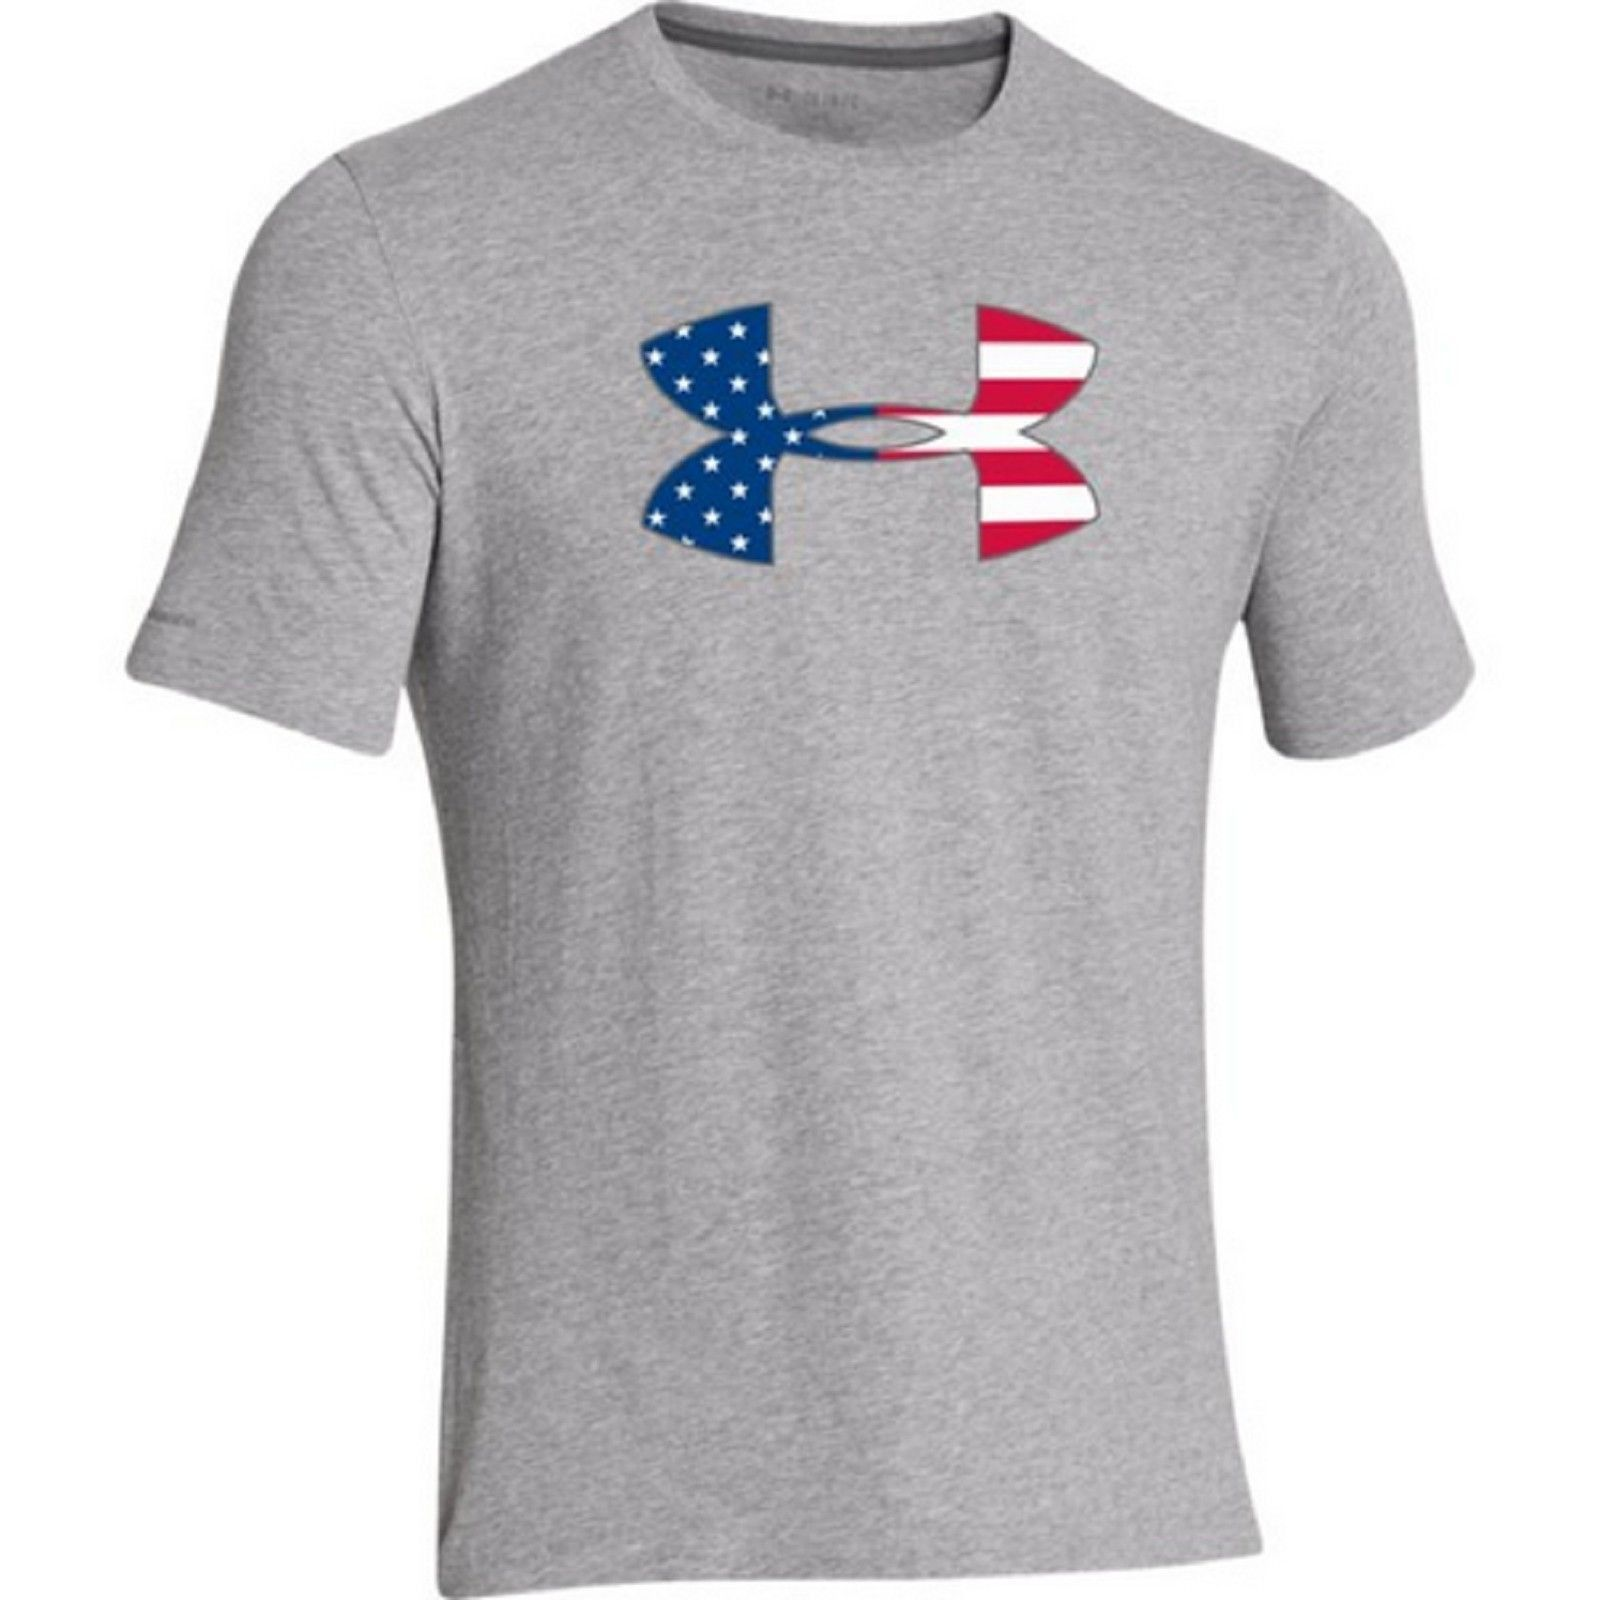 under armour usa flag ua logo t shirt men 39 s patriotic